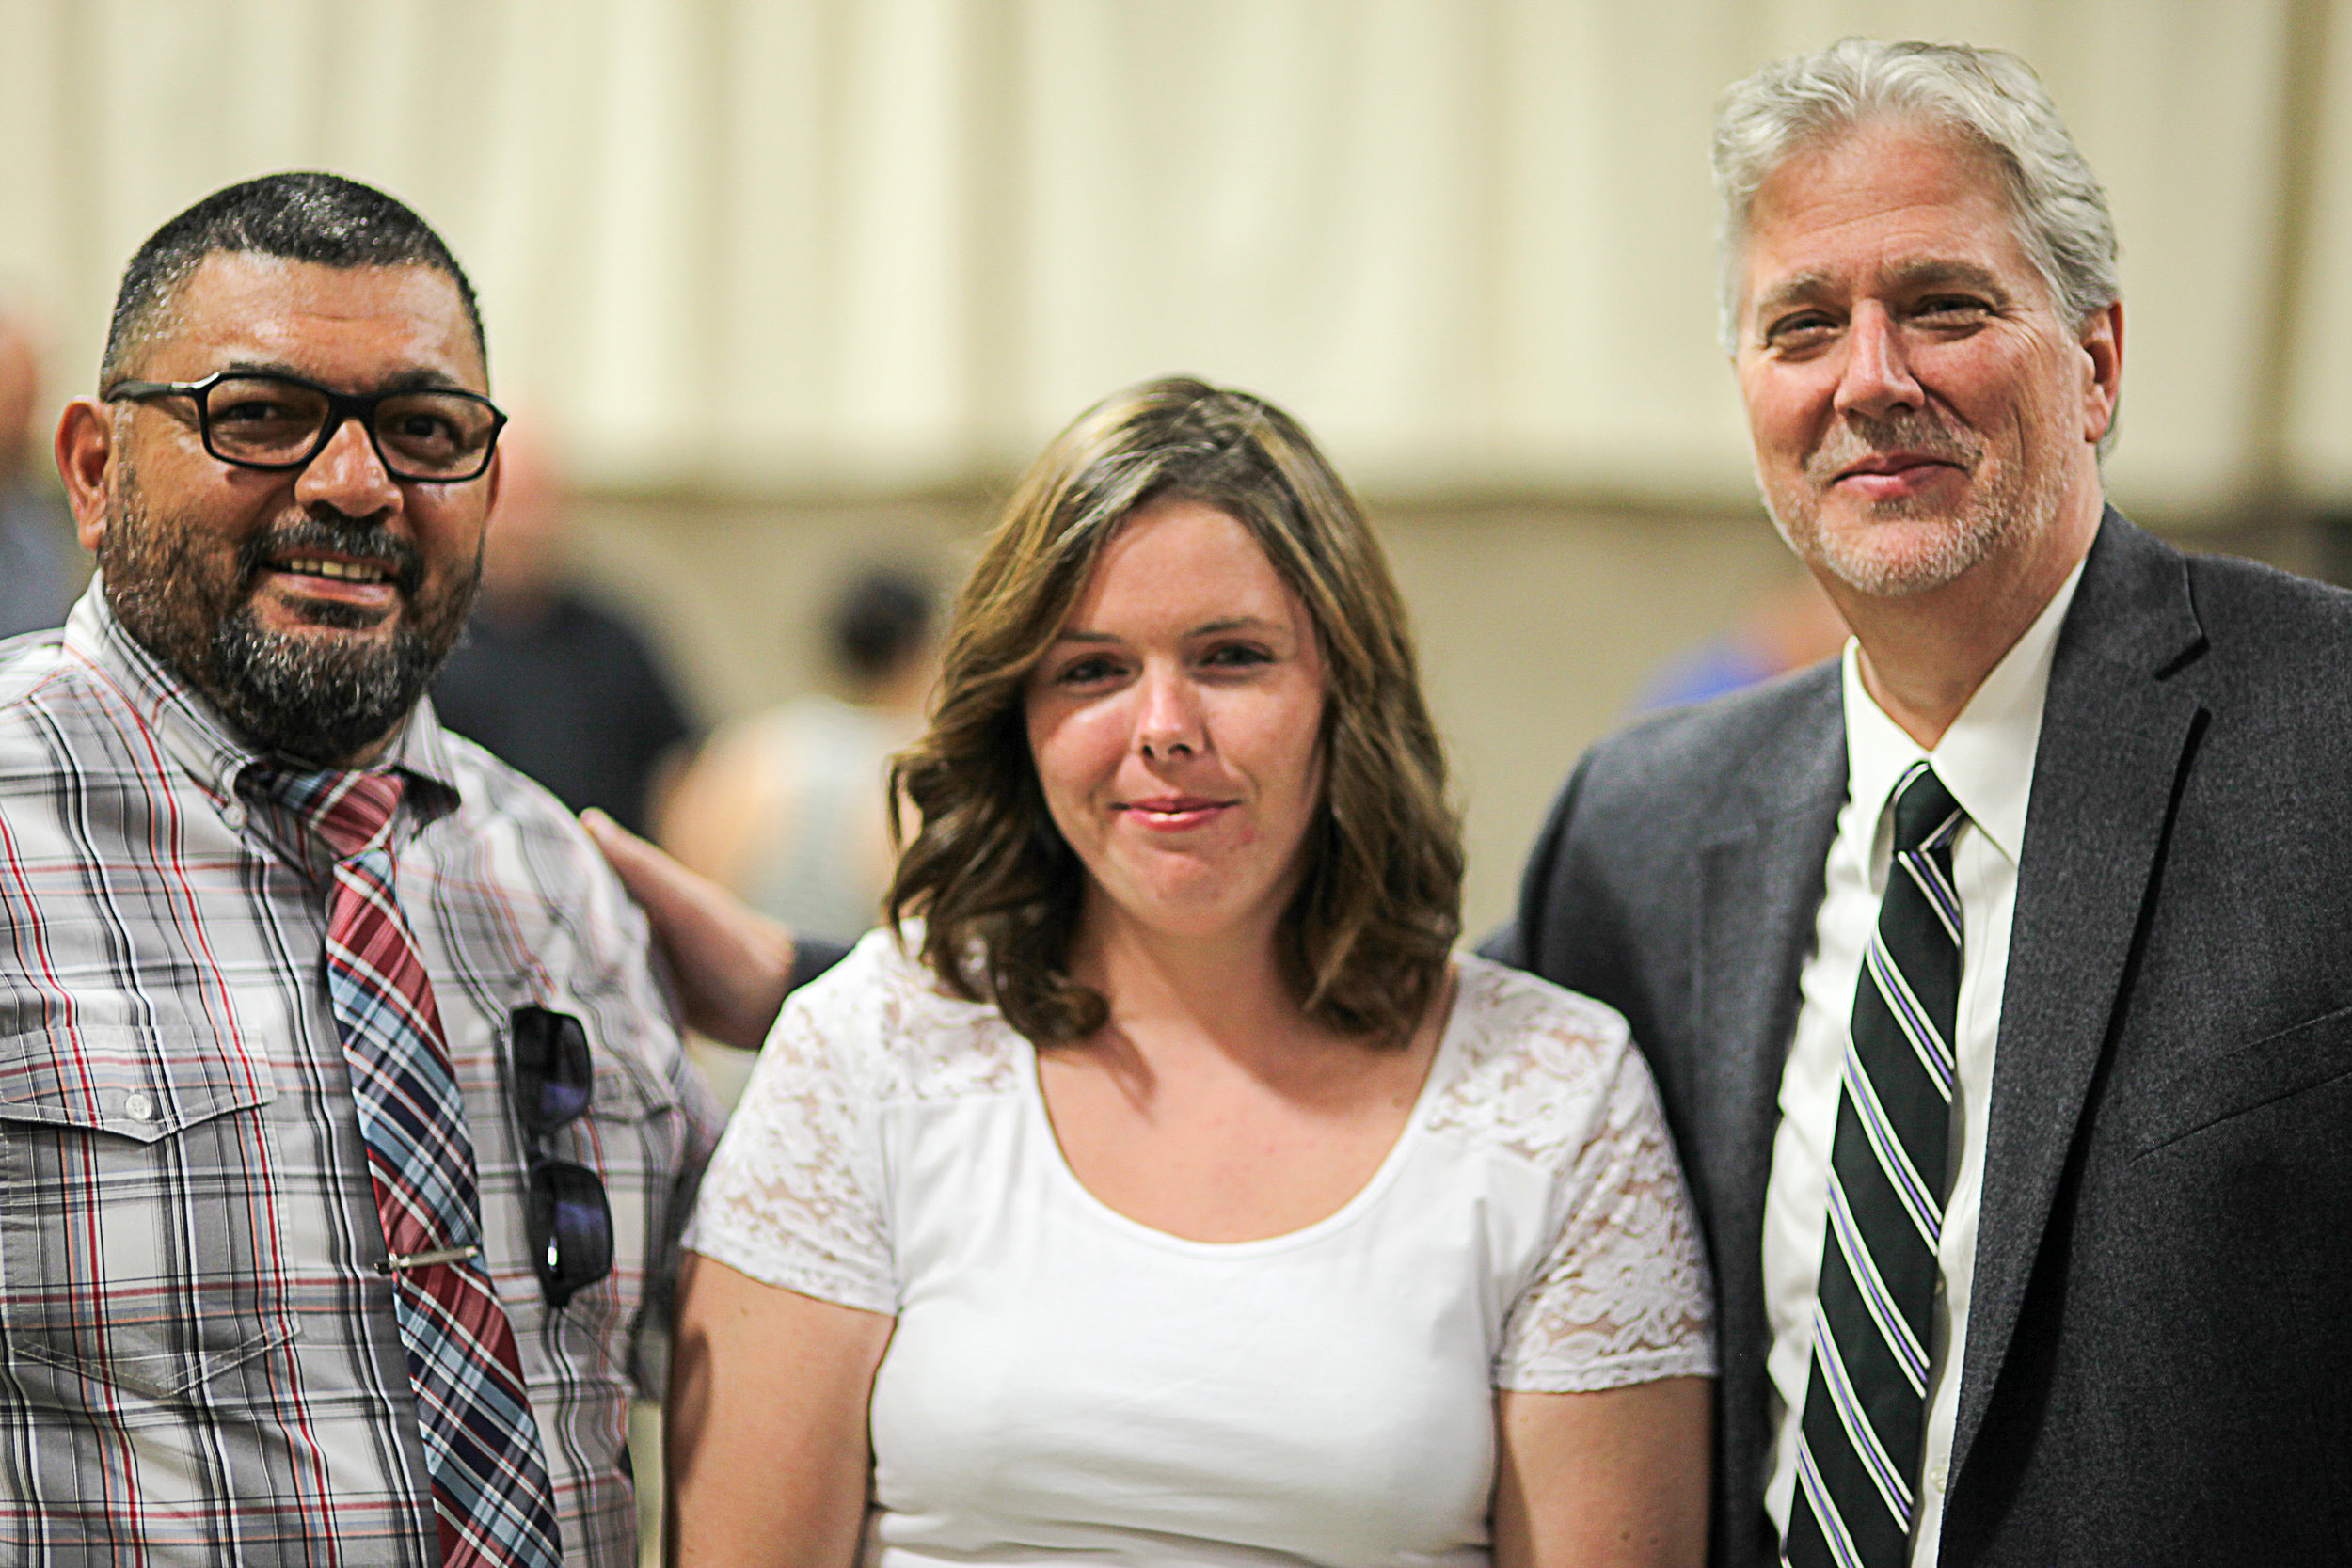 Probation Officer Gene Fernandez (L) and Judge Gary Johnson (R) attended our Life Change Academy graduation in September to celebrate Lanessa}